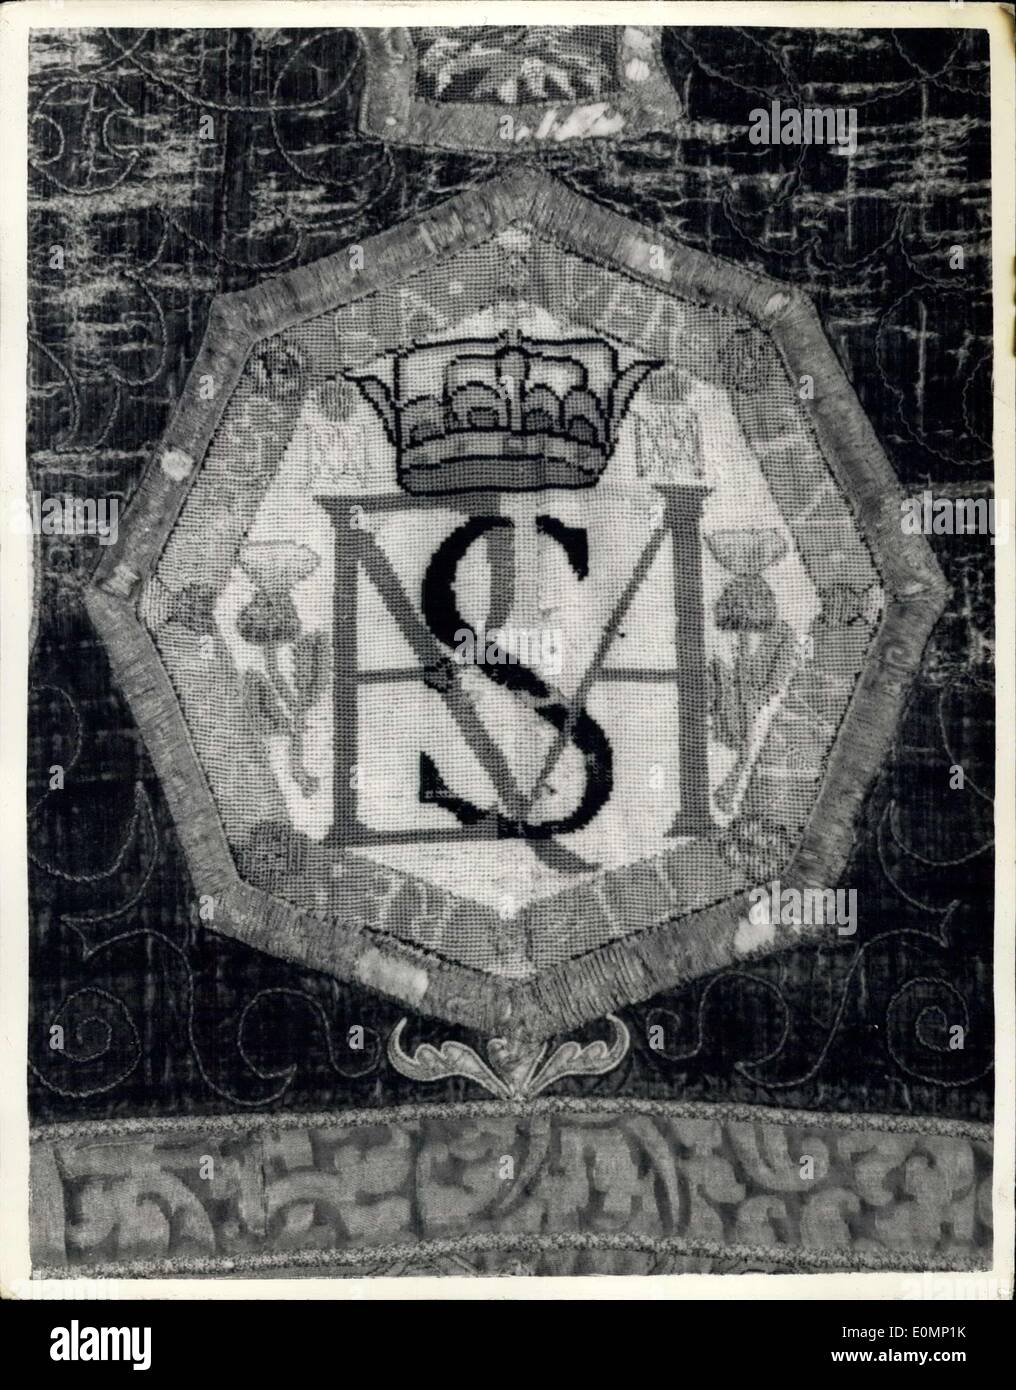 Jan. 17, 1956 - Needlework of Mary, Queen of Scots On Display.. The Oxburgh Hangings.. The Oxburgh hangings - presented to the Victoria and Albert Museum by the National Art Collections Fund in 1953 - have been undergoing repair for the past two years - and are now on display at the Museum. The hangings are the work of Mary, Queen of Scots - and Elizabeth, Countess of Shrewsbury (Bess of Hardwick) - done while the Queen was the custody of the Earl of Shrewsbury at Tutbury Castle.. (1569). - Stock Image